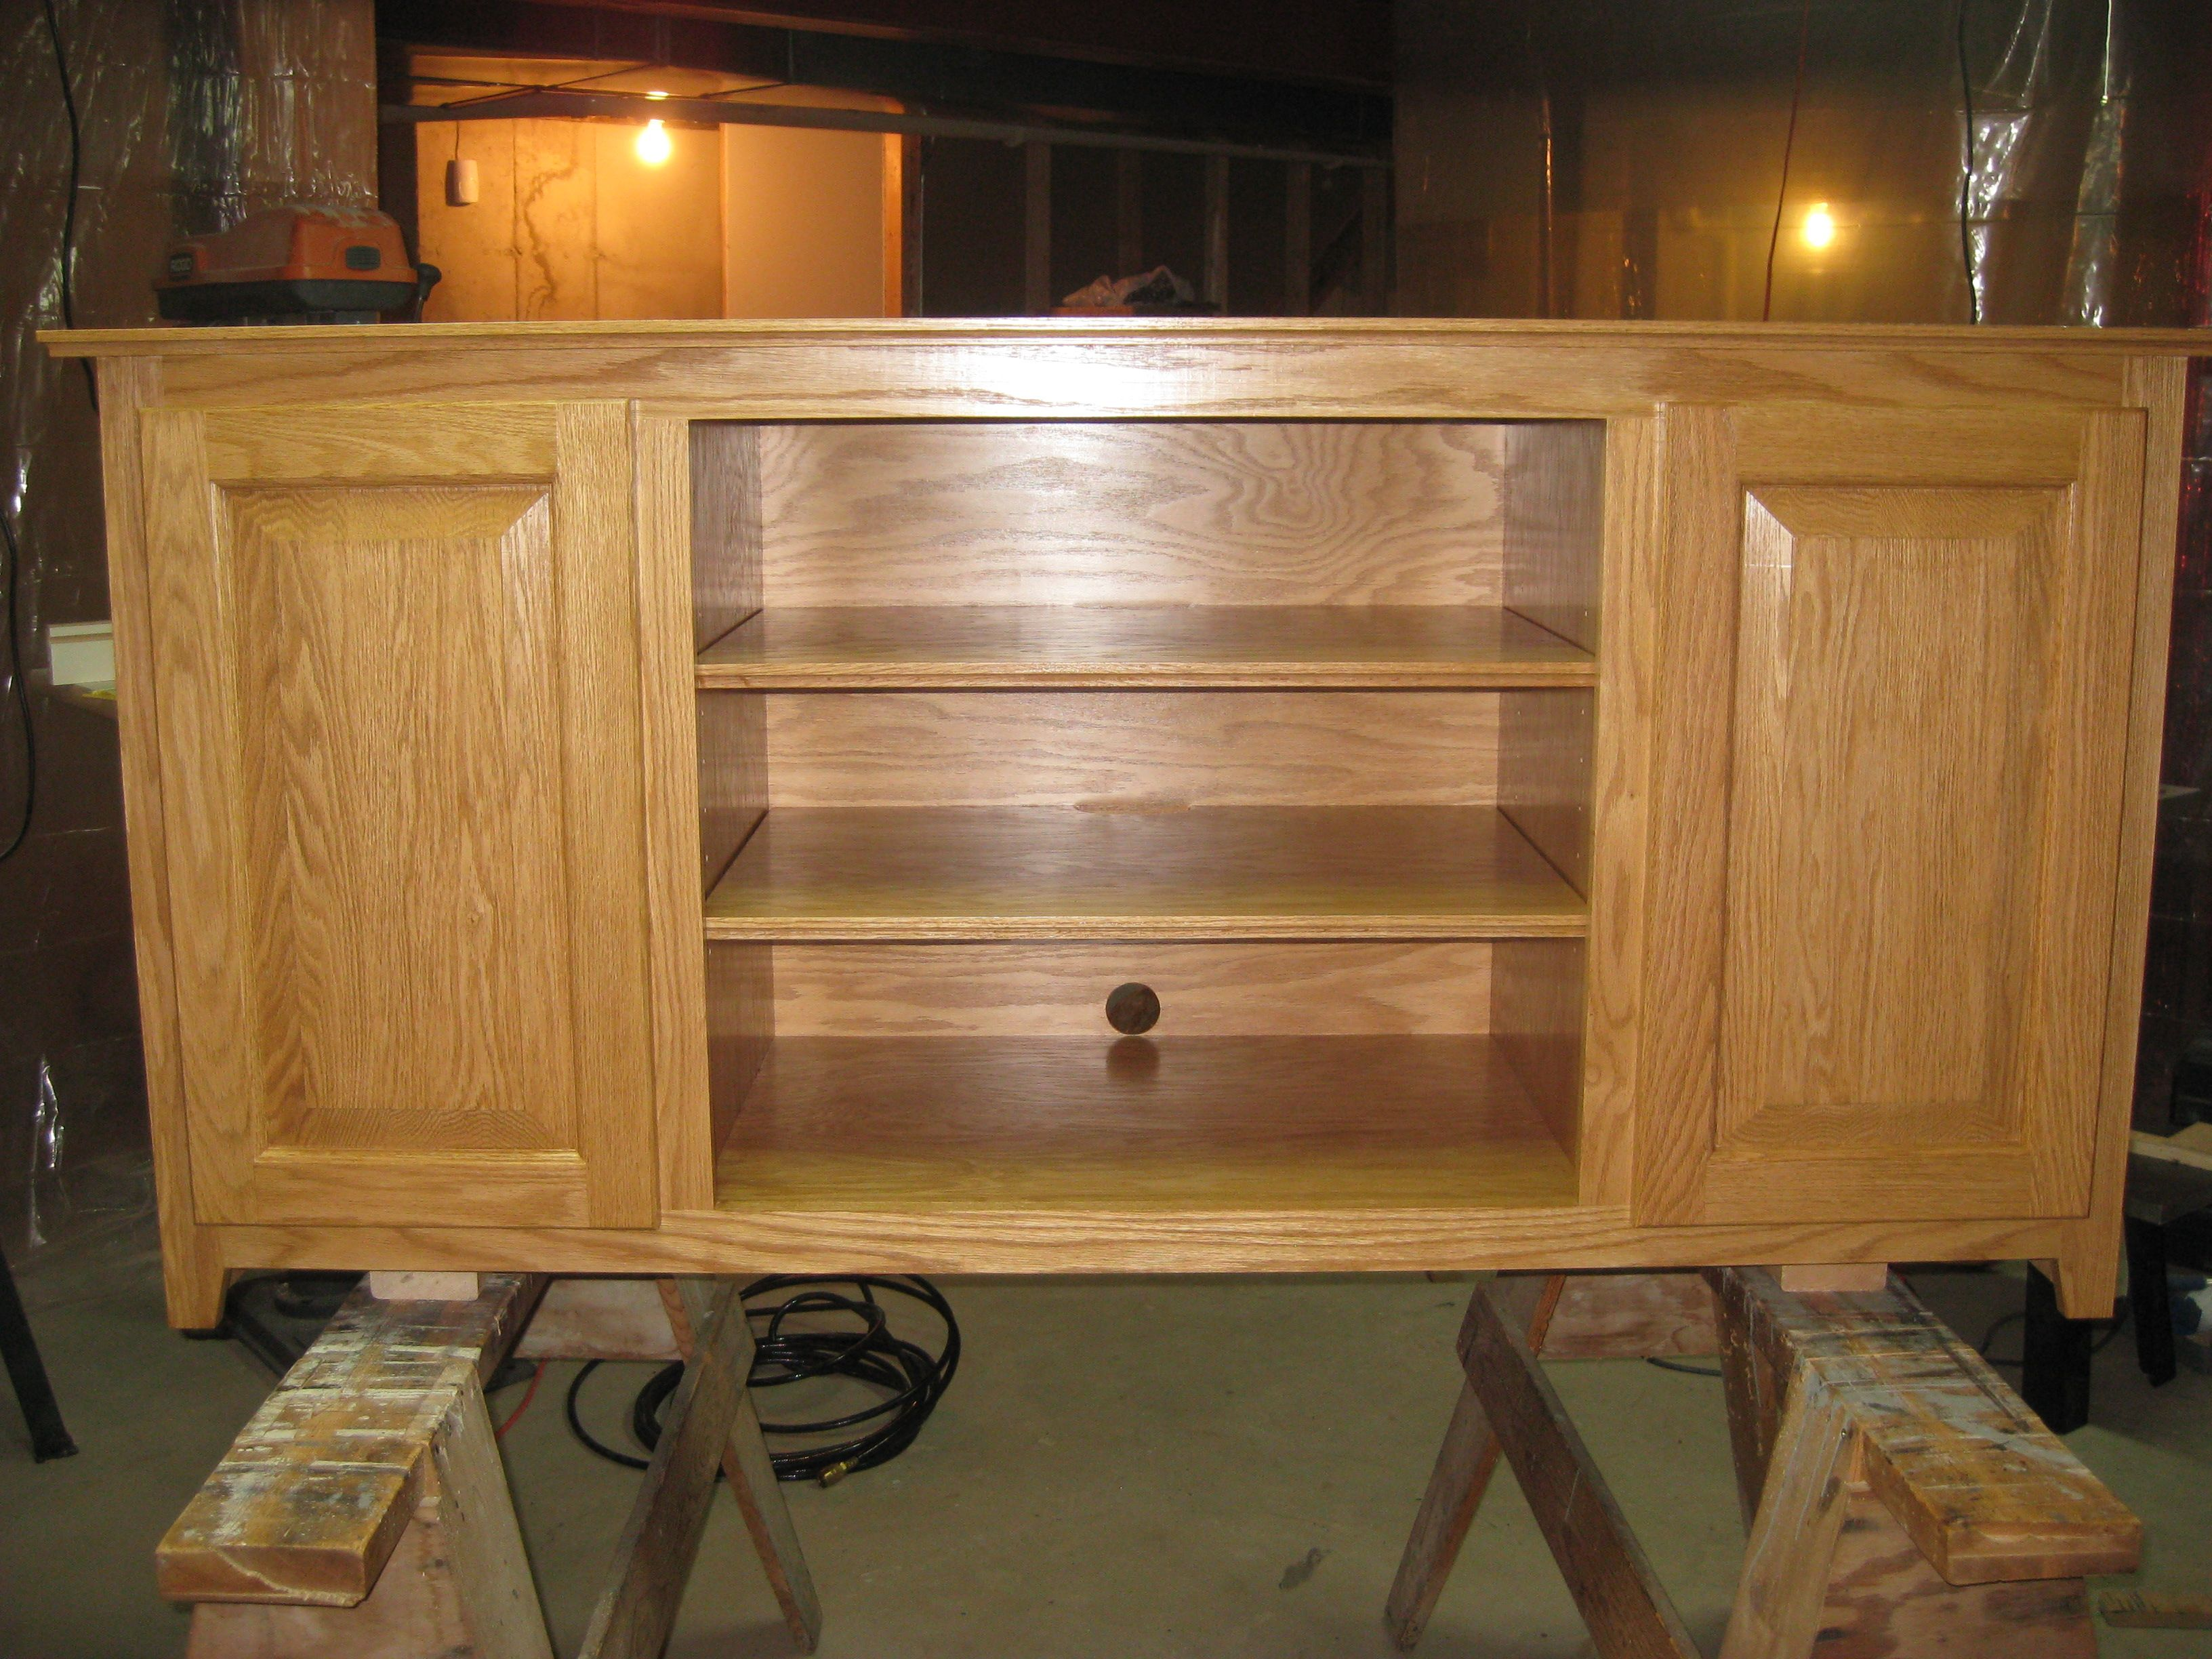 Tv Stand Designs Pdf : Plans to build tv stand woodworking plans pdf download tv stand